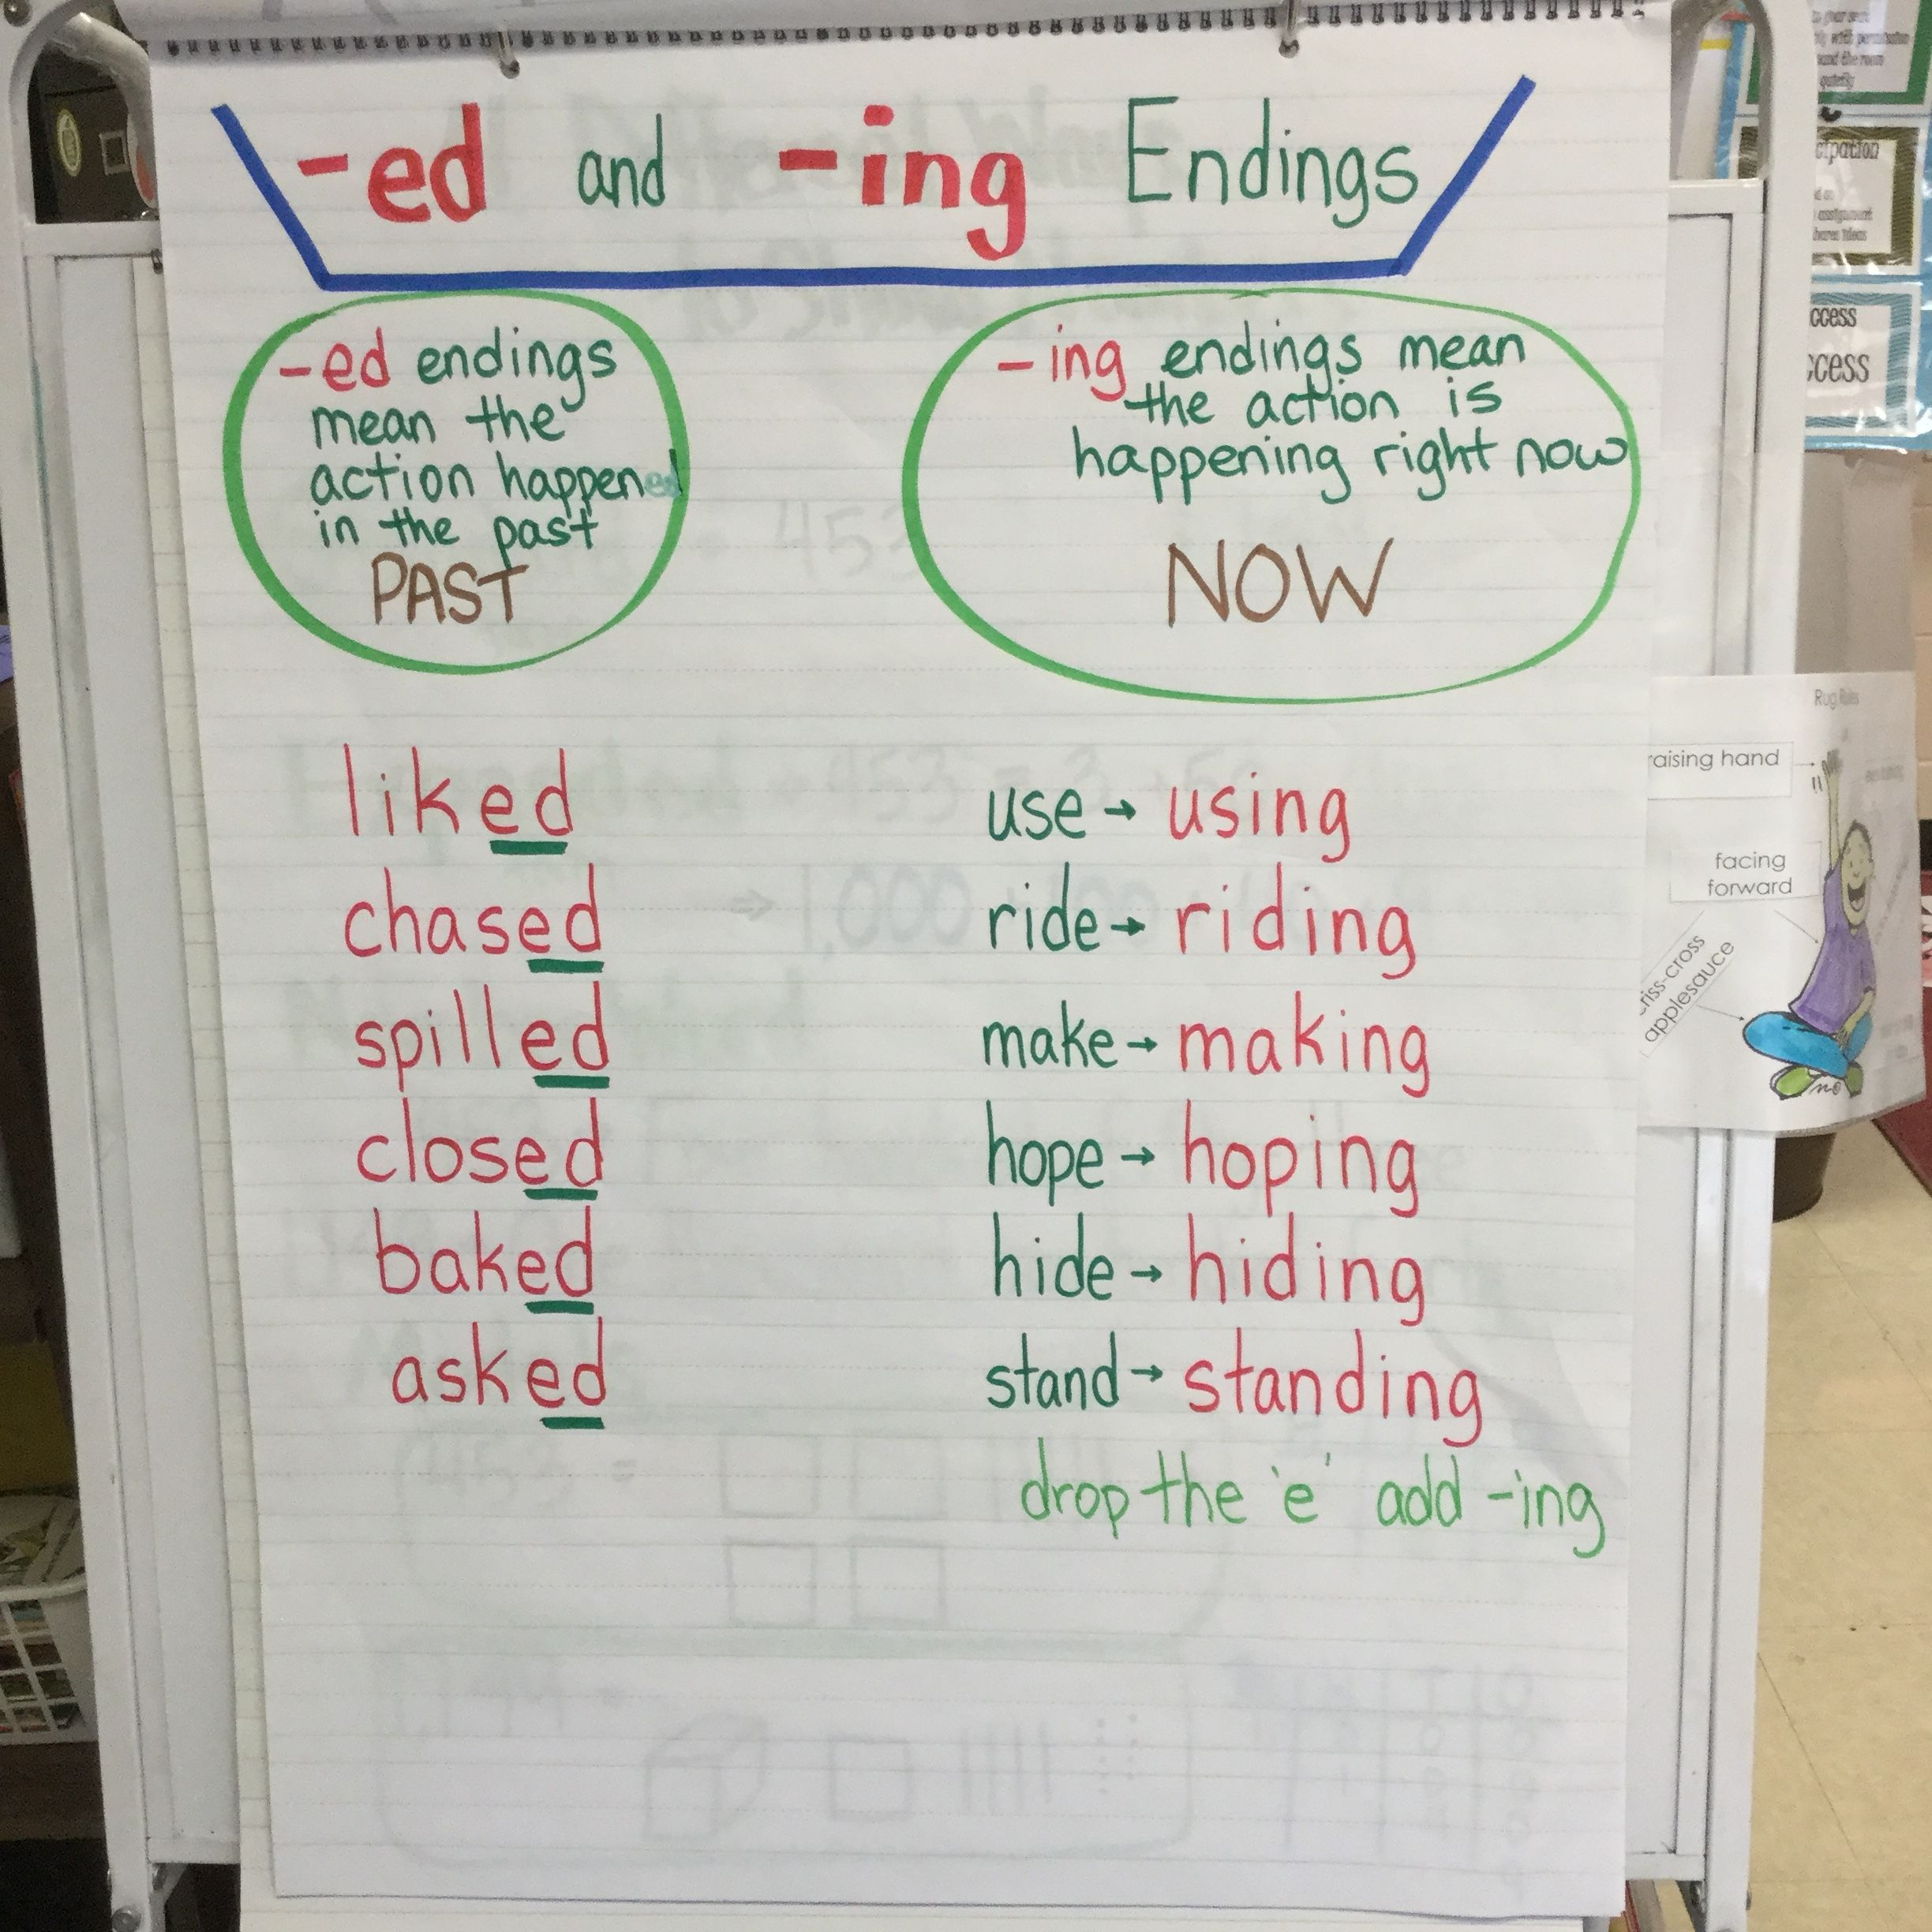 small resolution of ed and -ing endings Drop the e and add -ing   Inflectional endings